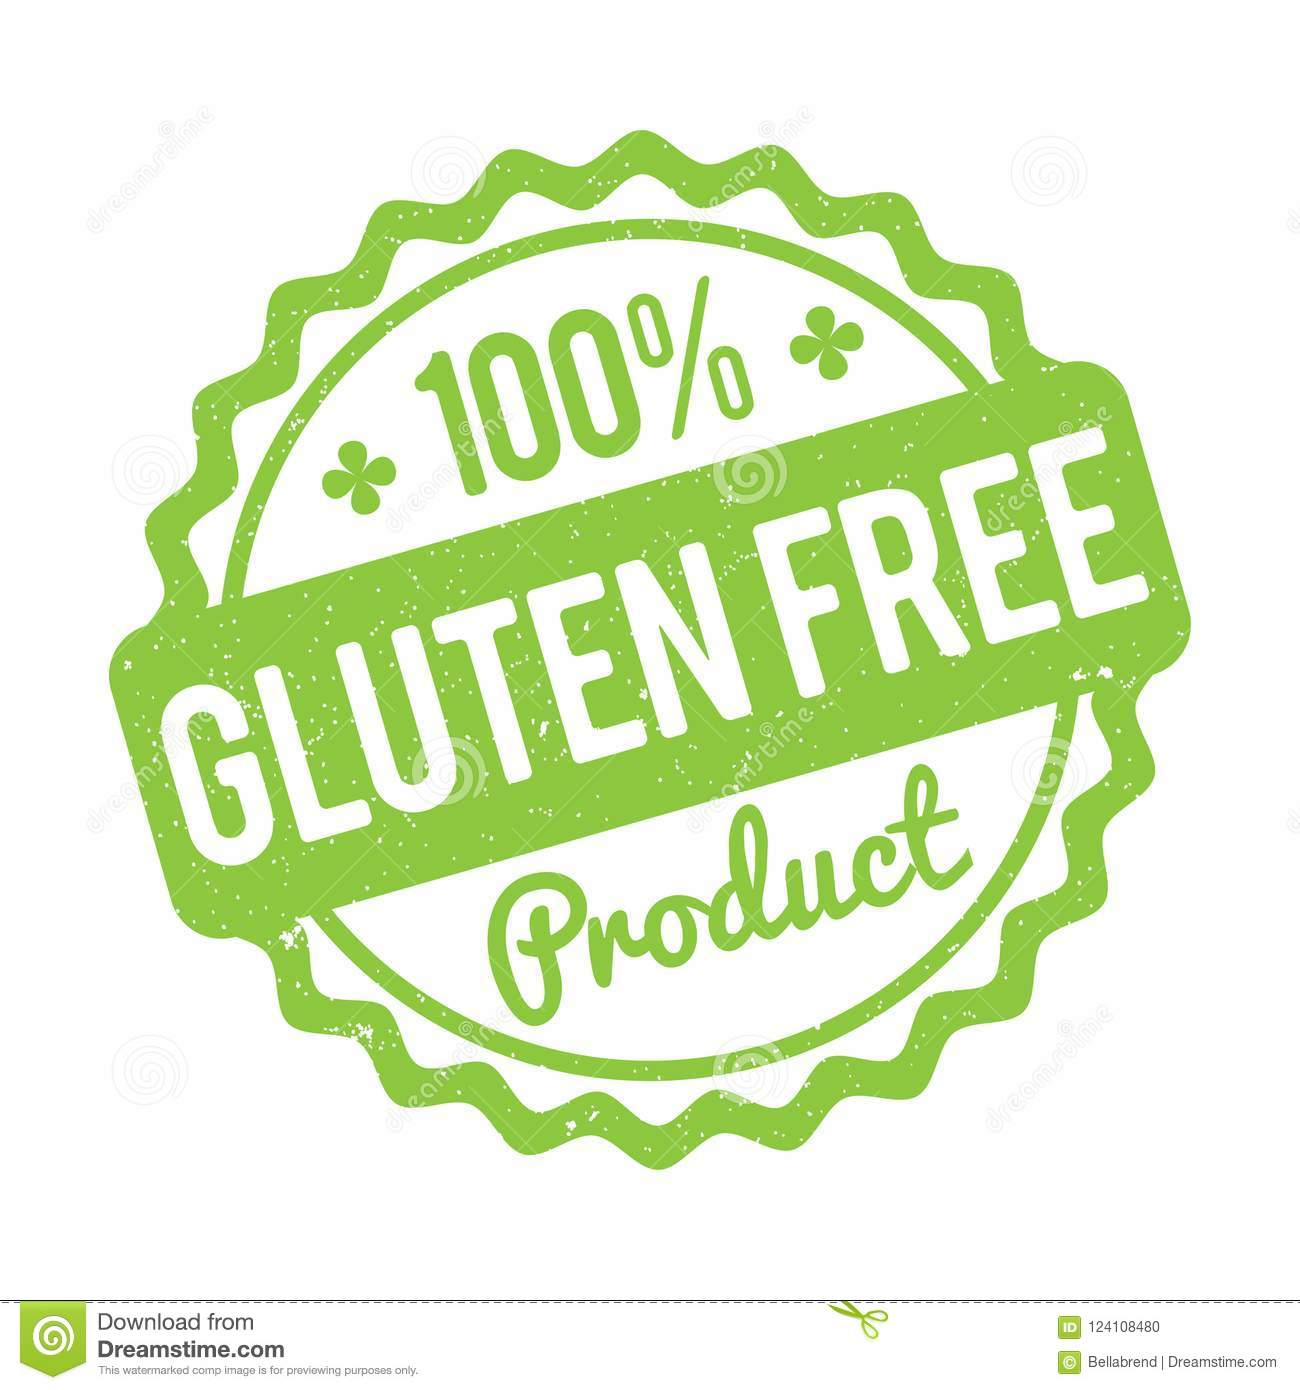 Gluten FREE Product rubber stamp green on a white background.